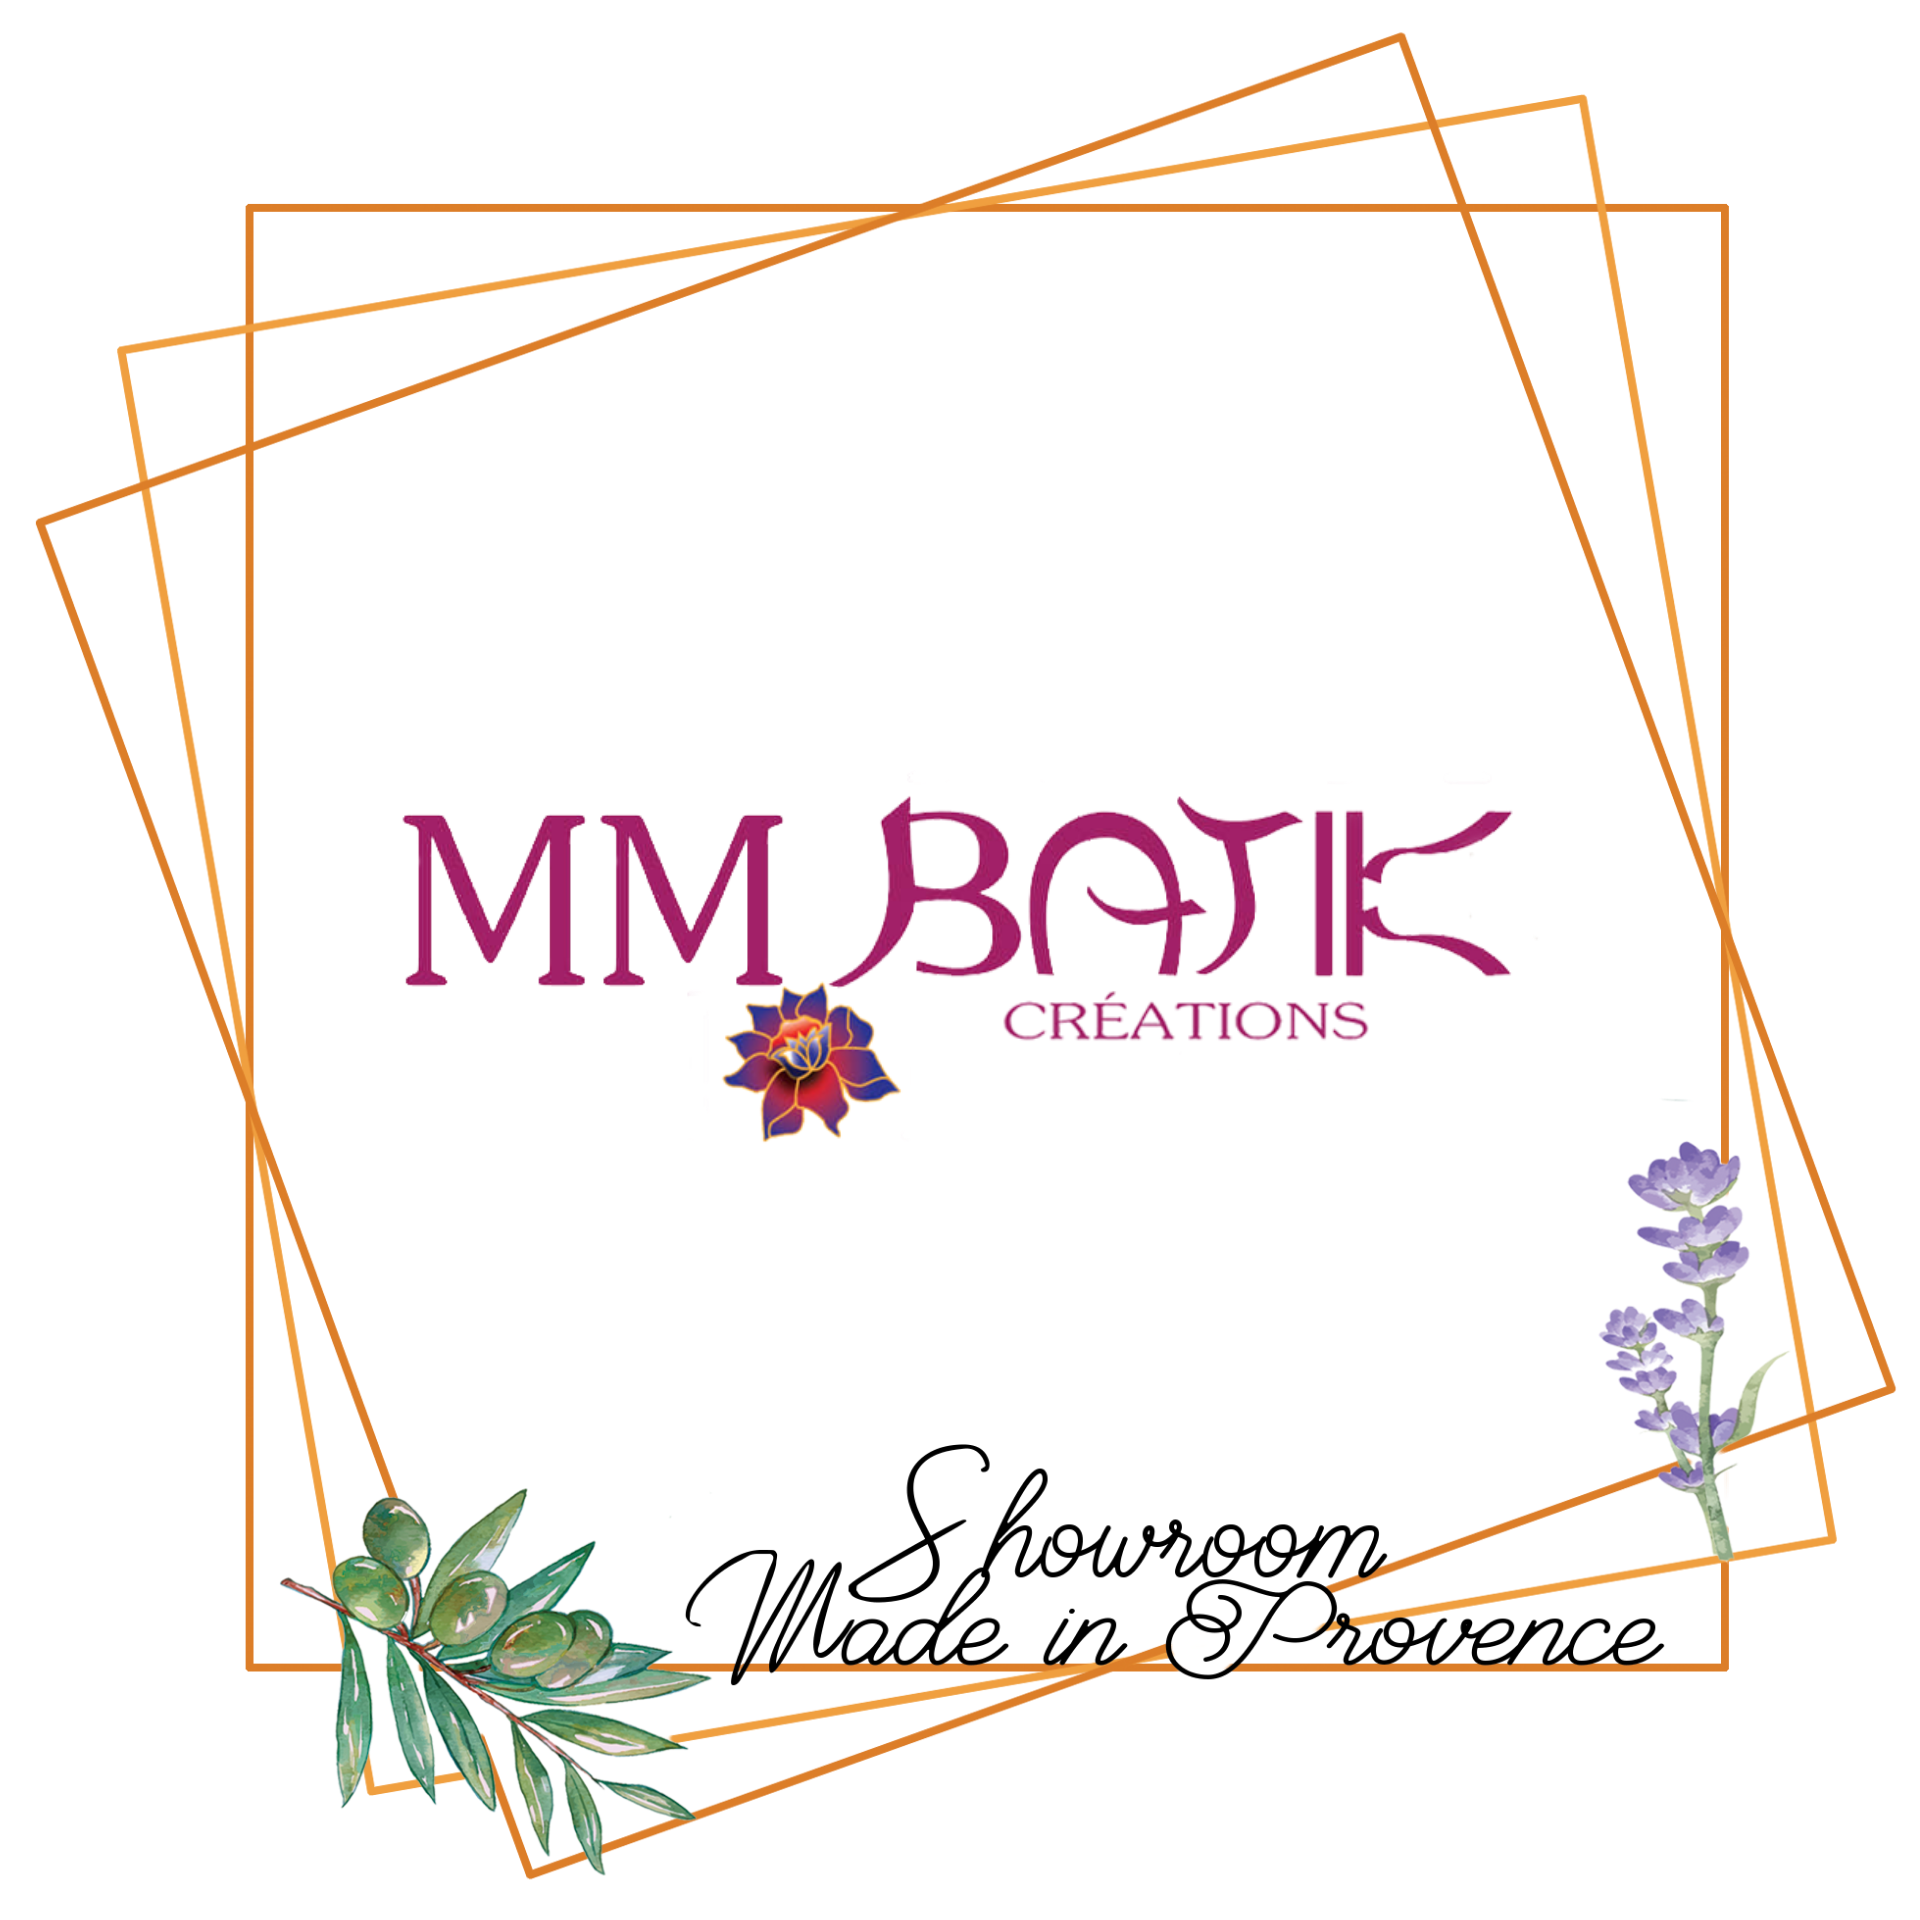 MM Batik créations showroom made in provence